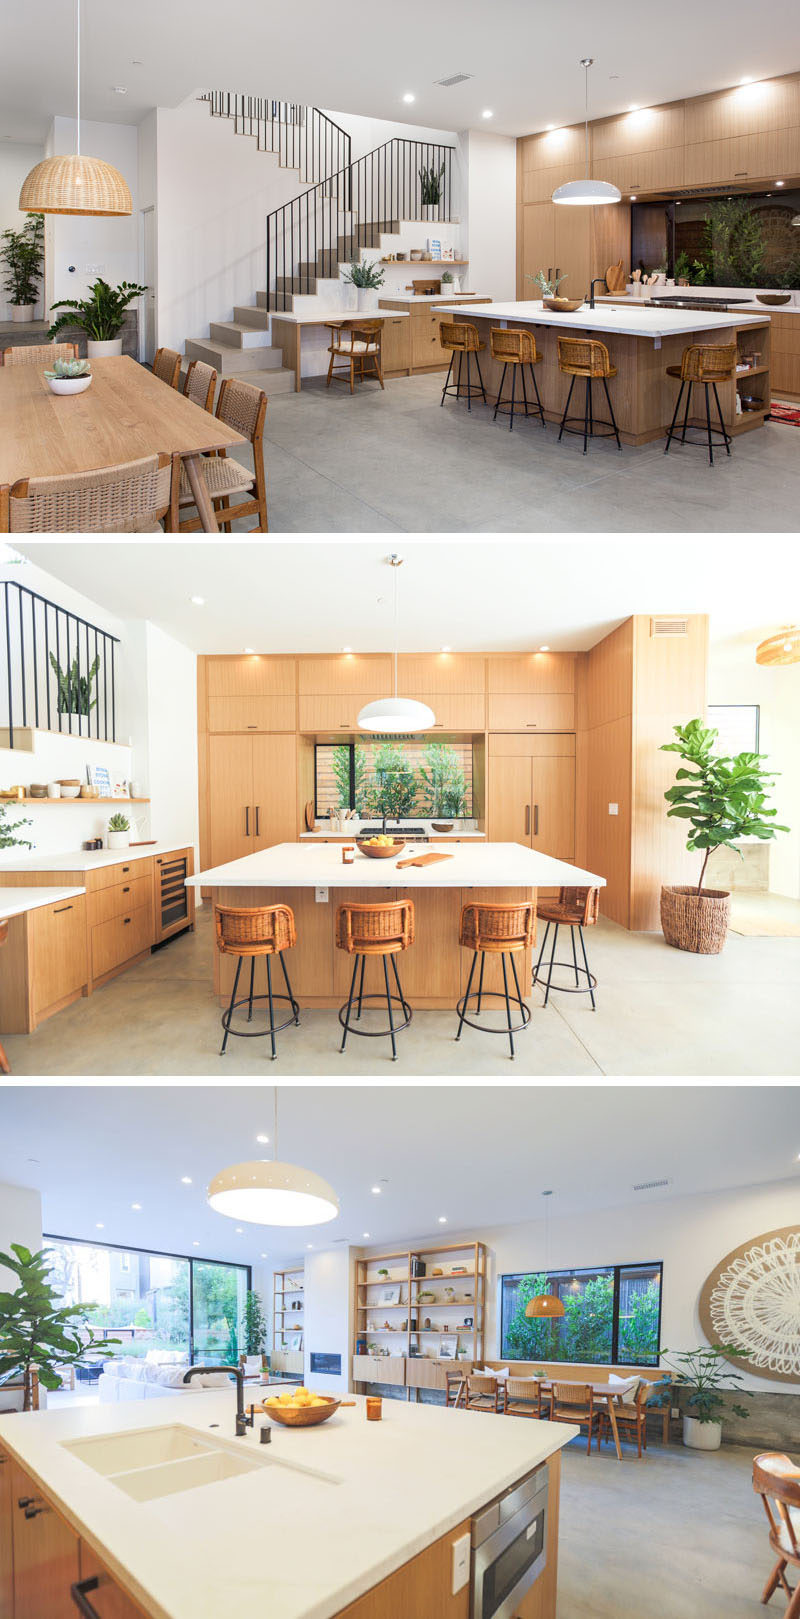 In this modern kitchen, wood cabinets have been paired with custom white marble countertops to tie in with the rest of the wood accents in the open plan room and the white walls.